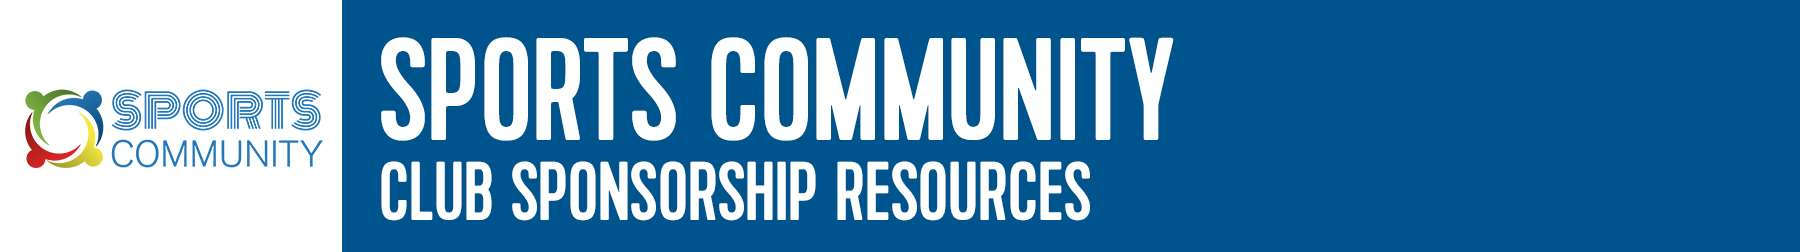 Sports Community Resources